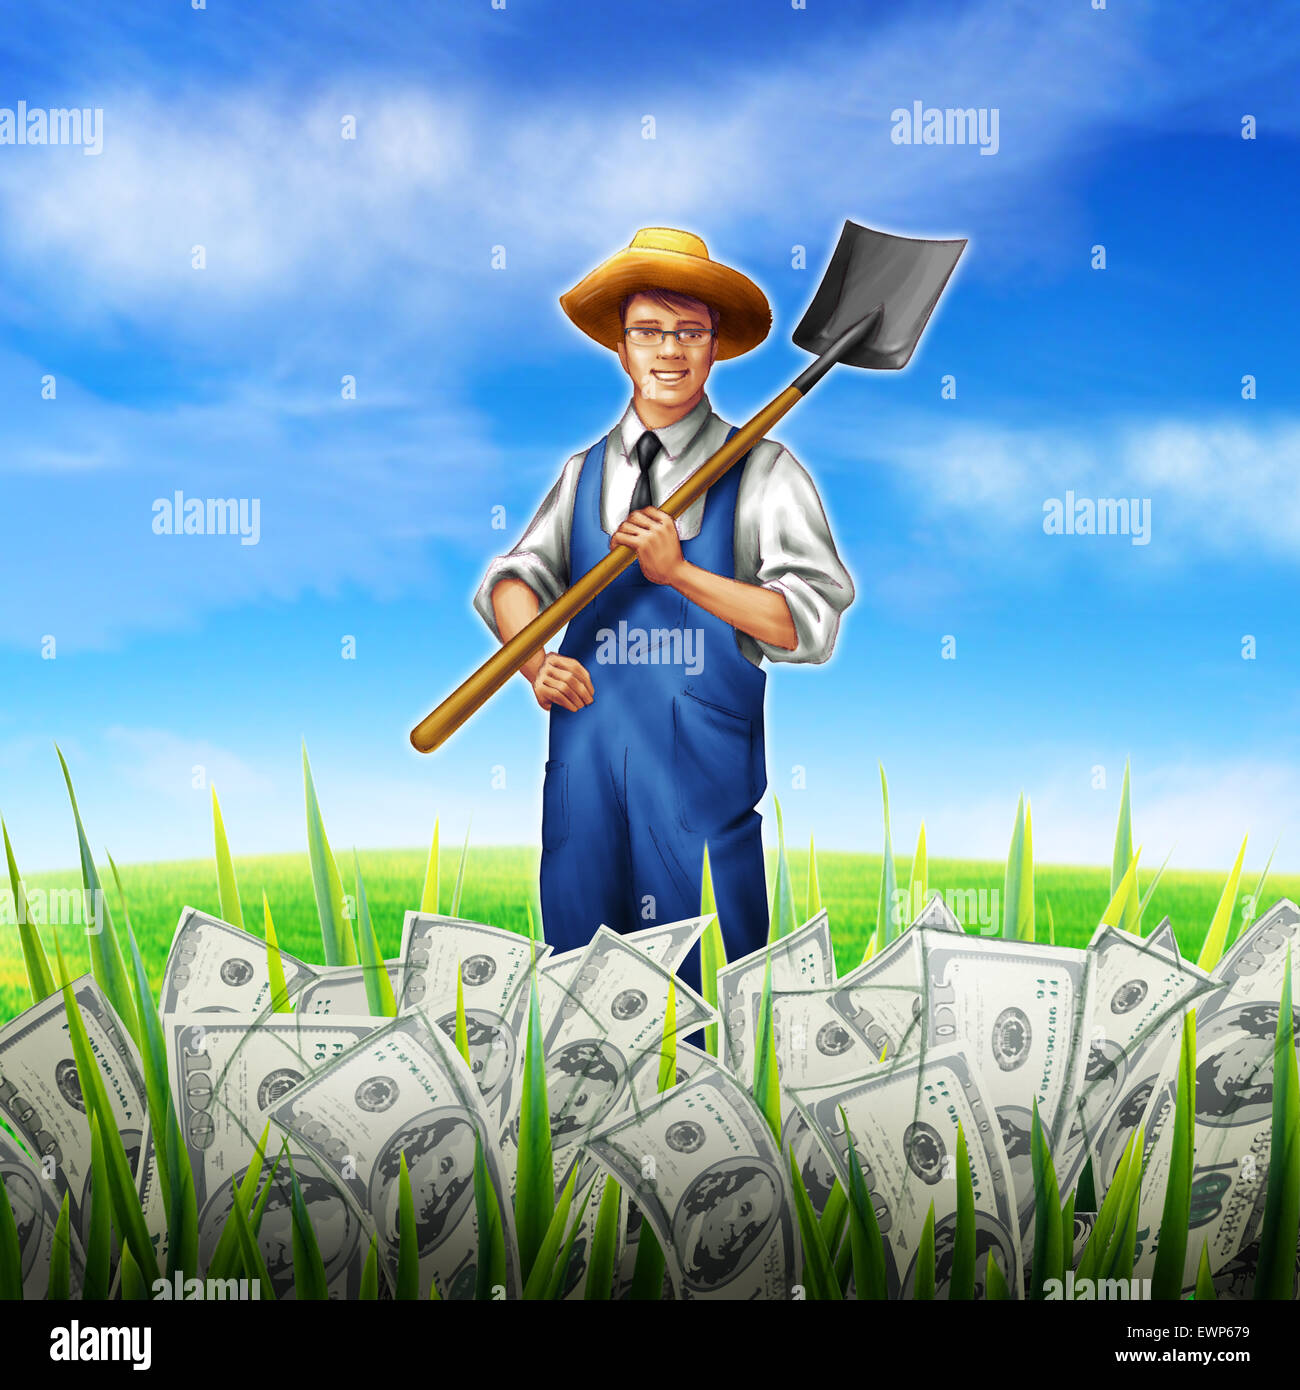 Businessman holding shovel growing money on his field - Stock Image